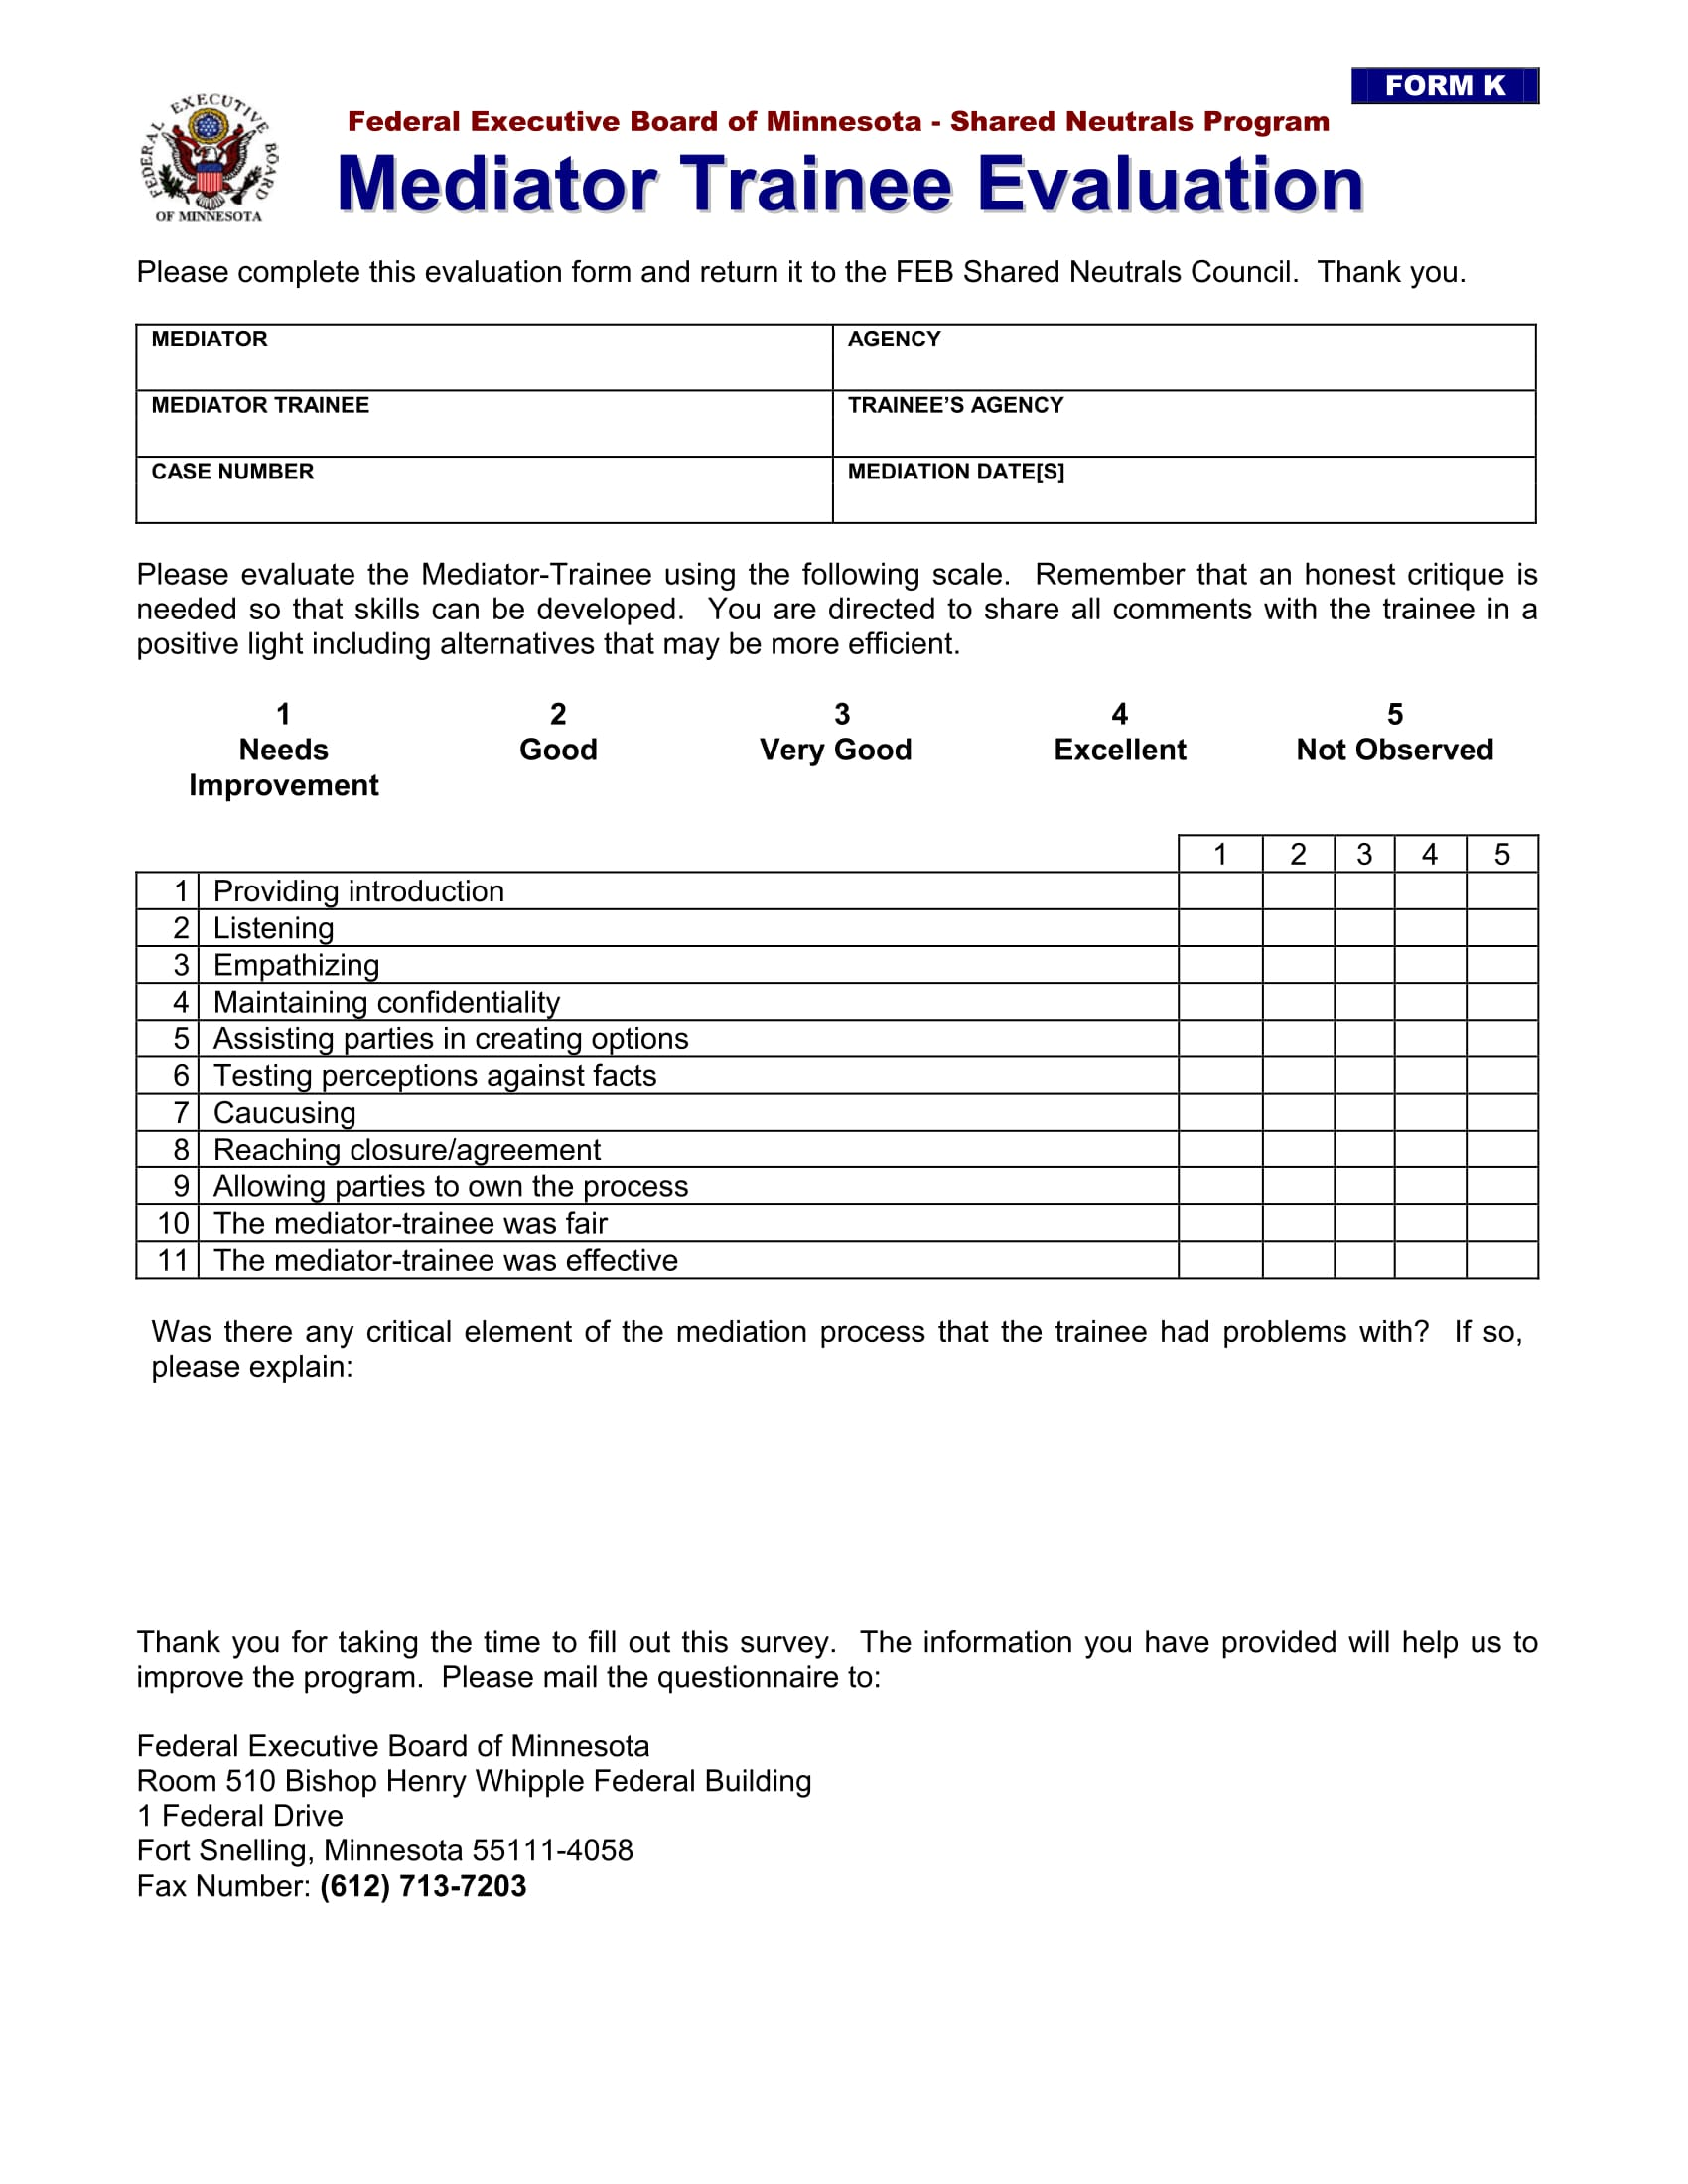 Mediator Trainee Evaluation Form